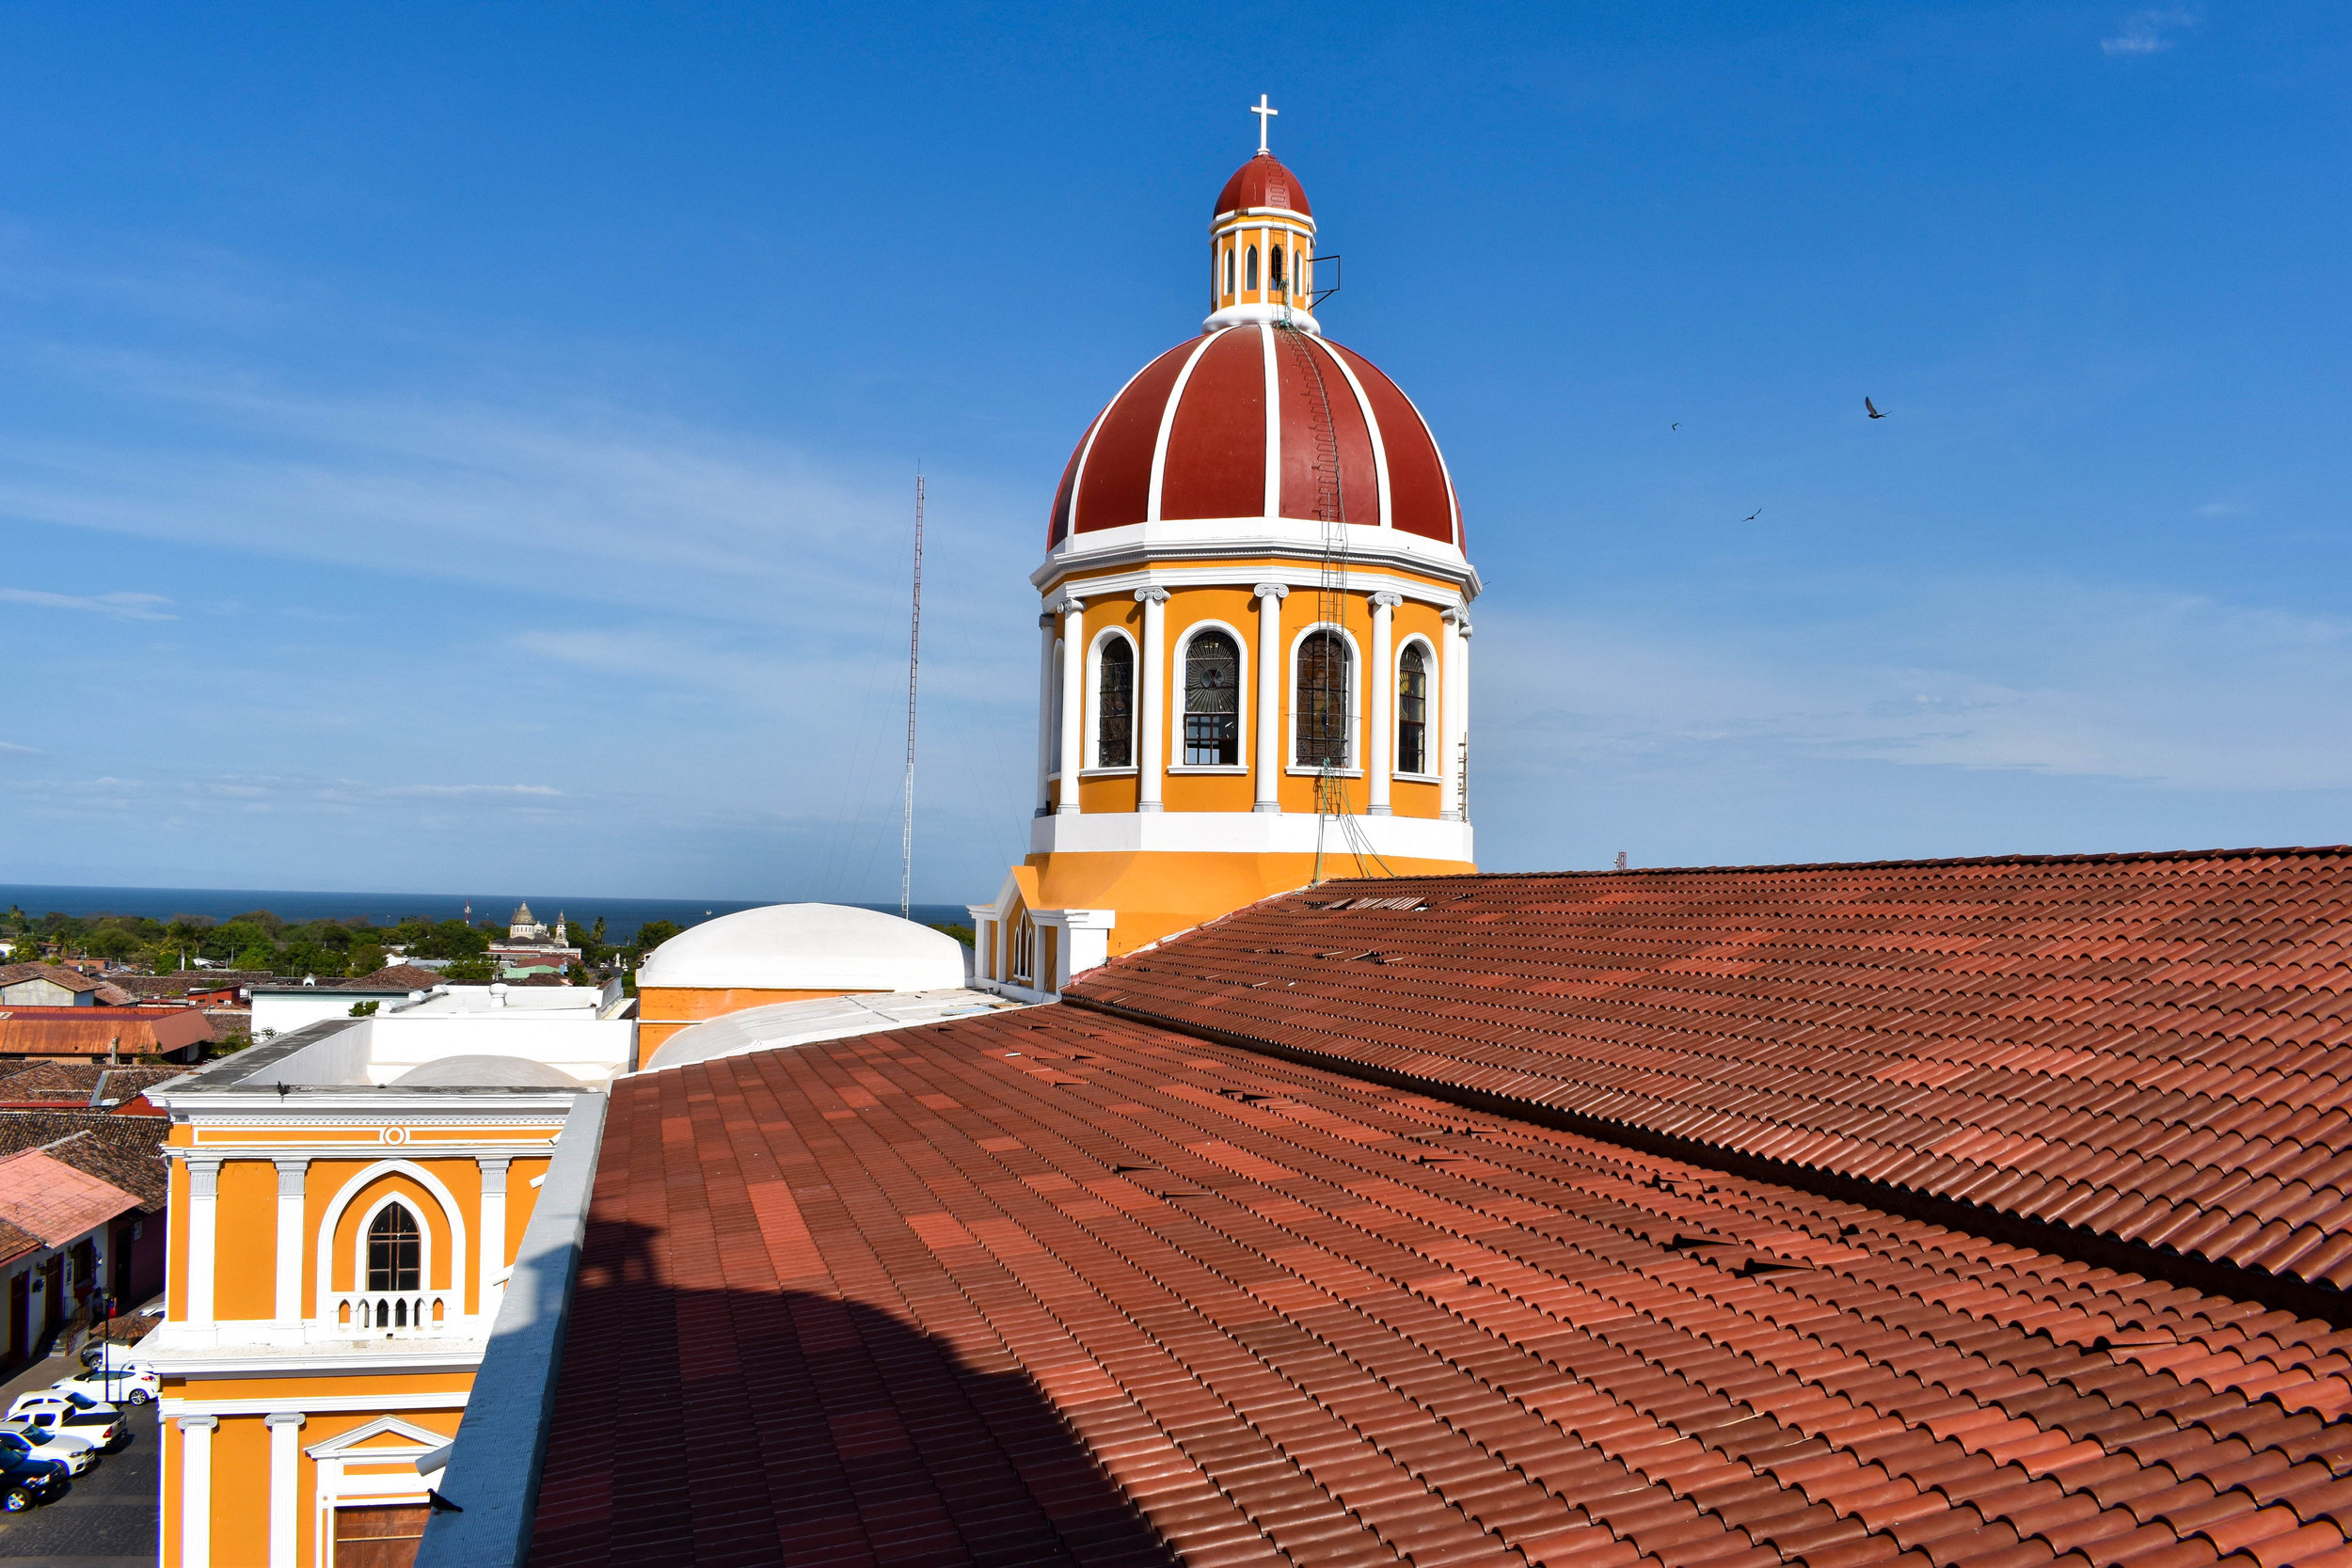 From The Bell Tower in Historic Granada, Nicaragua